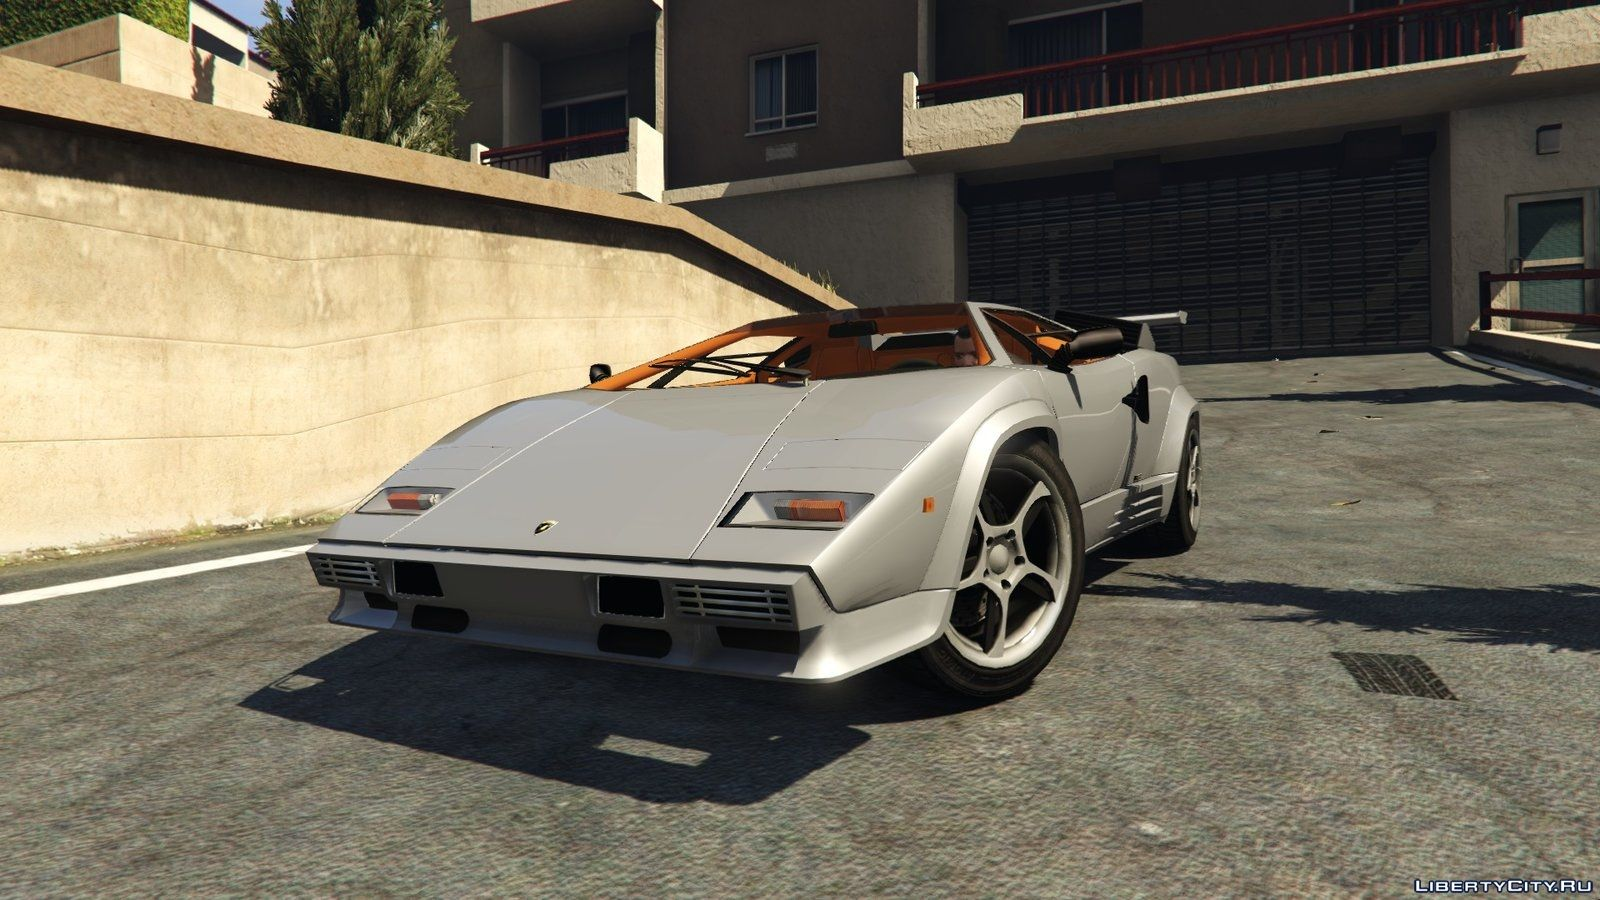 1988 lamborghini countach lp500 qv 1 0 gta 5. Black Bedroom Furniture Sets. Home Design Ideas